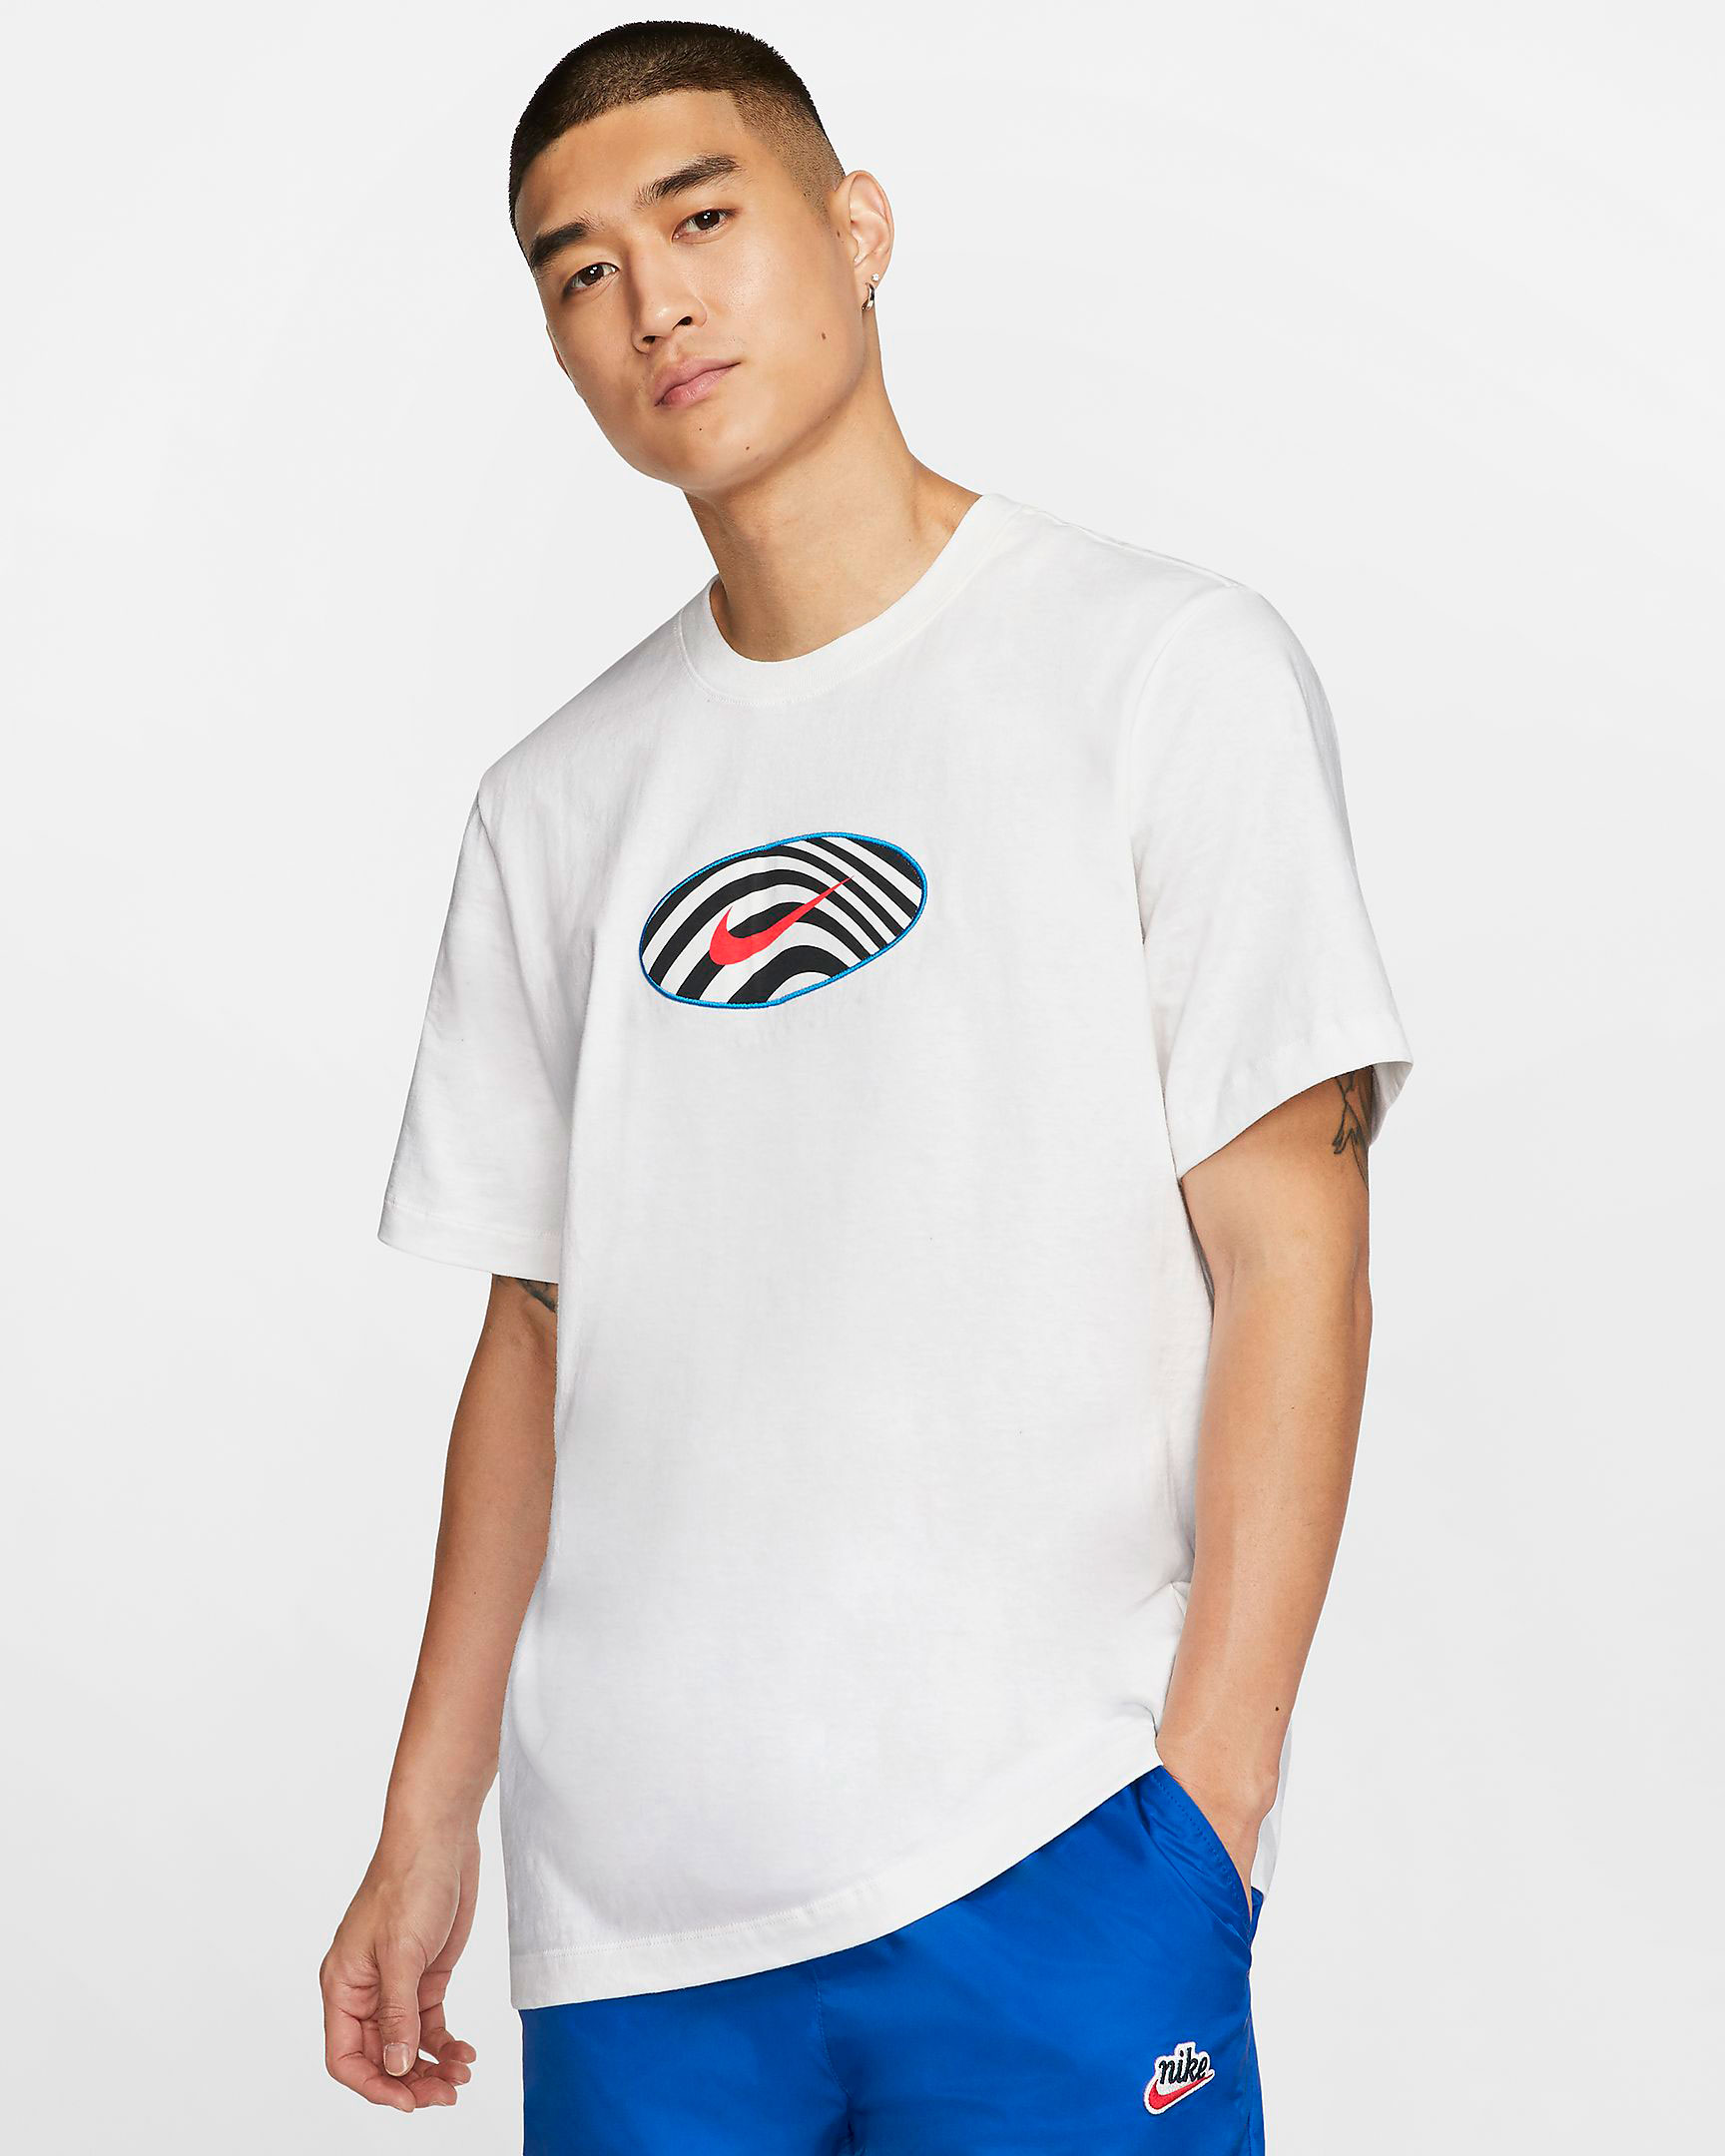 nike-air-max-nrg-shirt-white-blue-orange